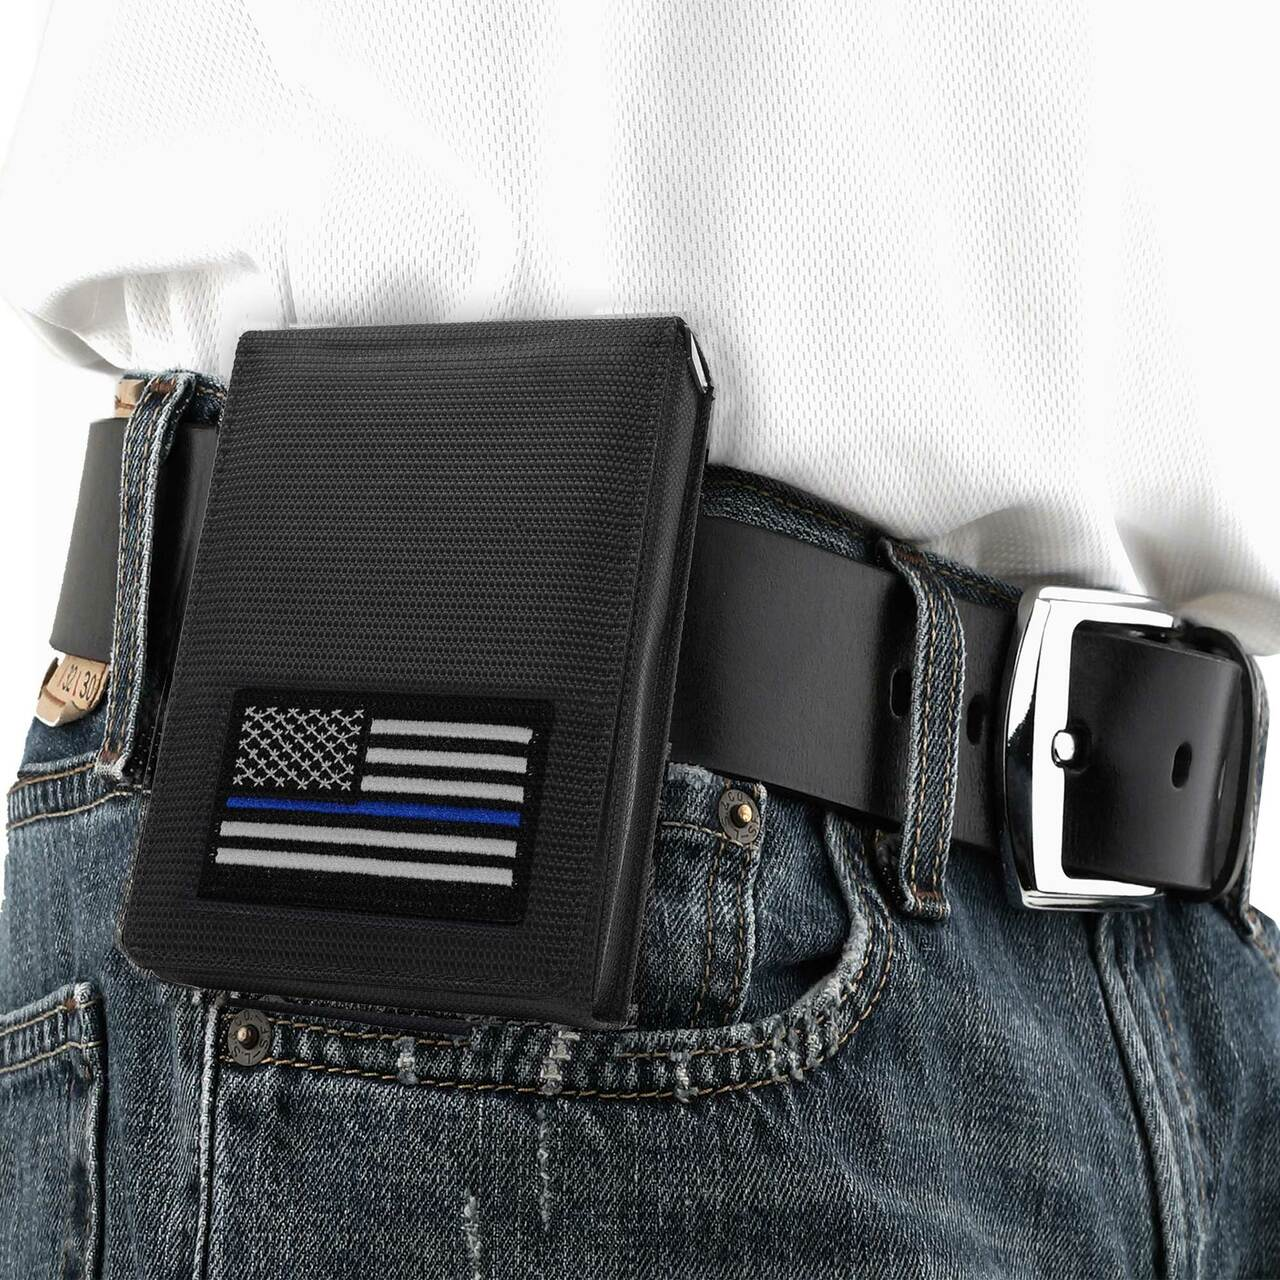 Walther PPK Thin Blue Line Holster